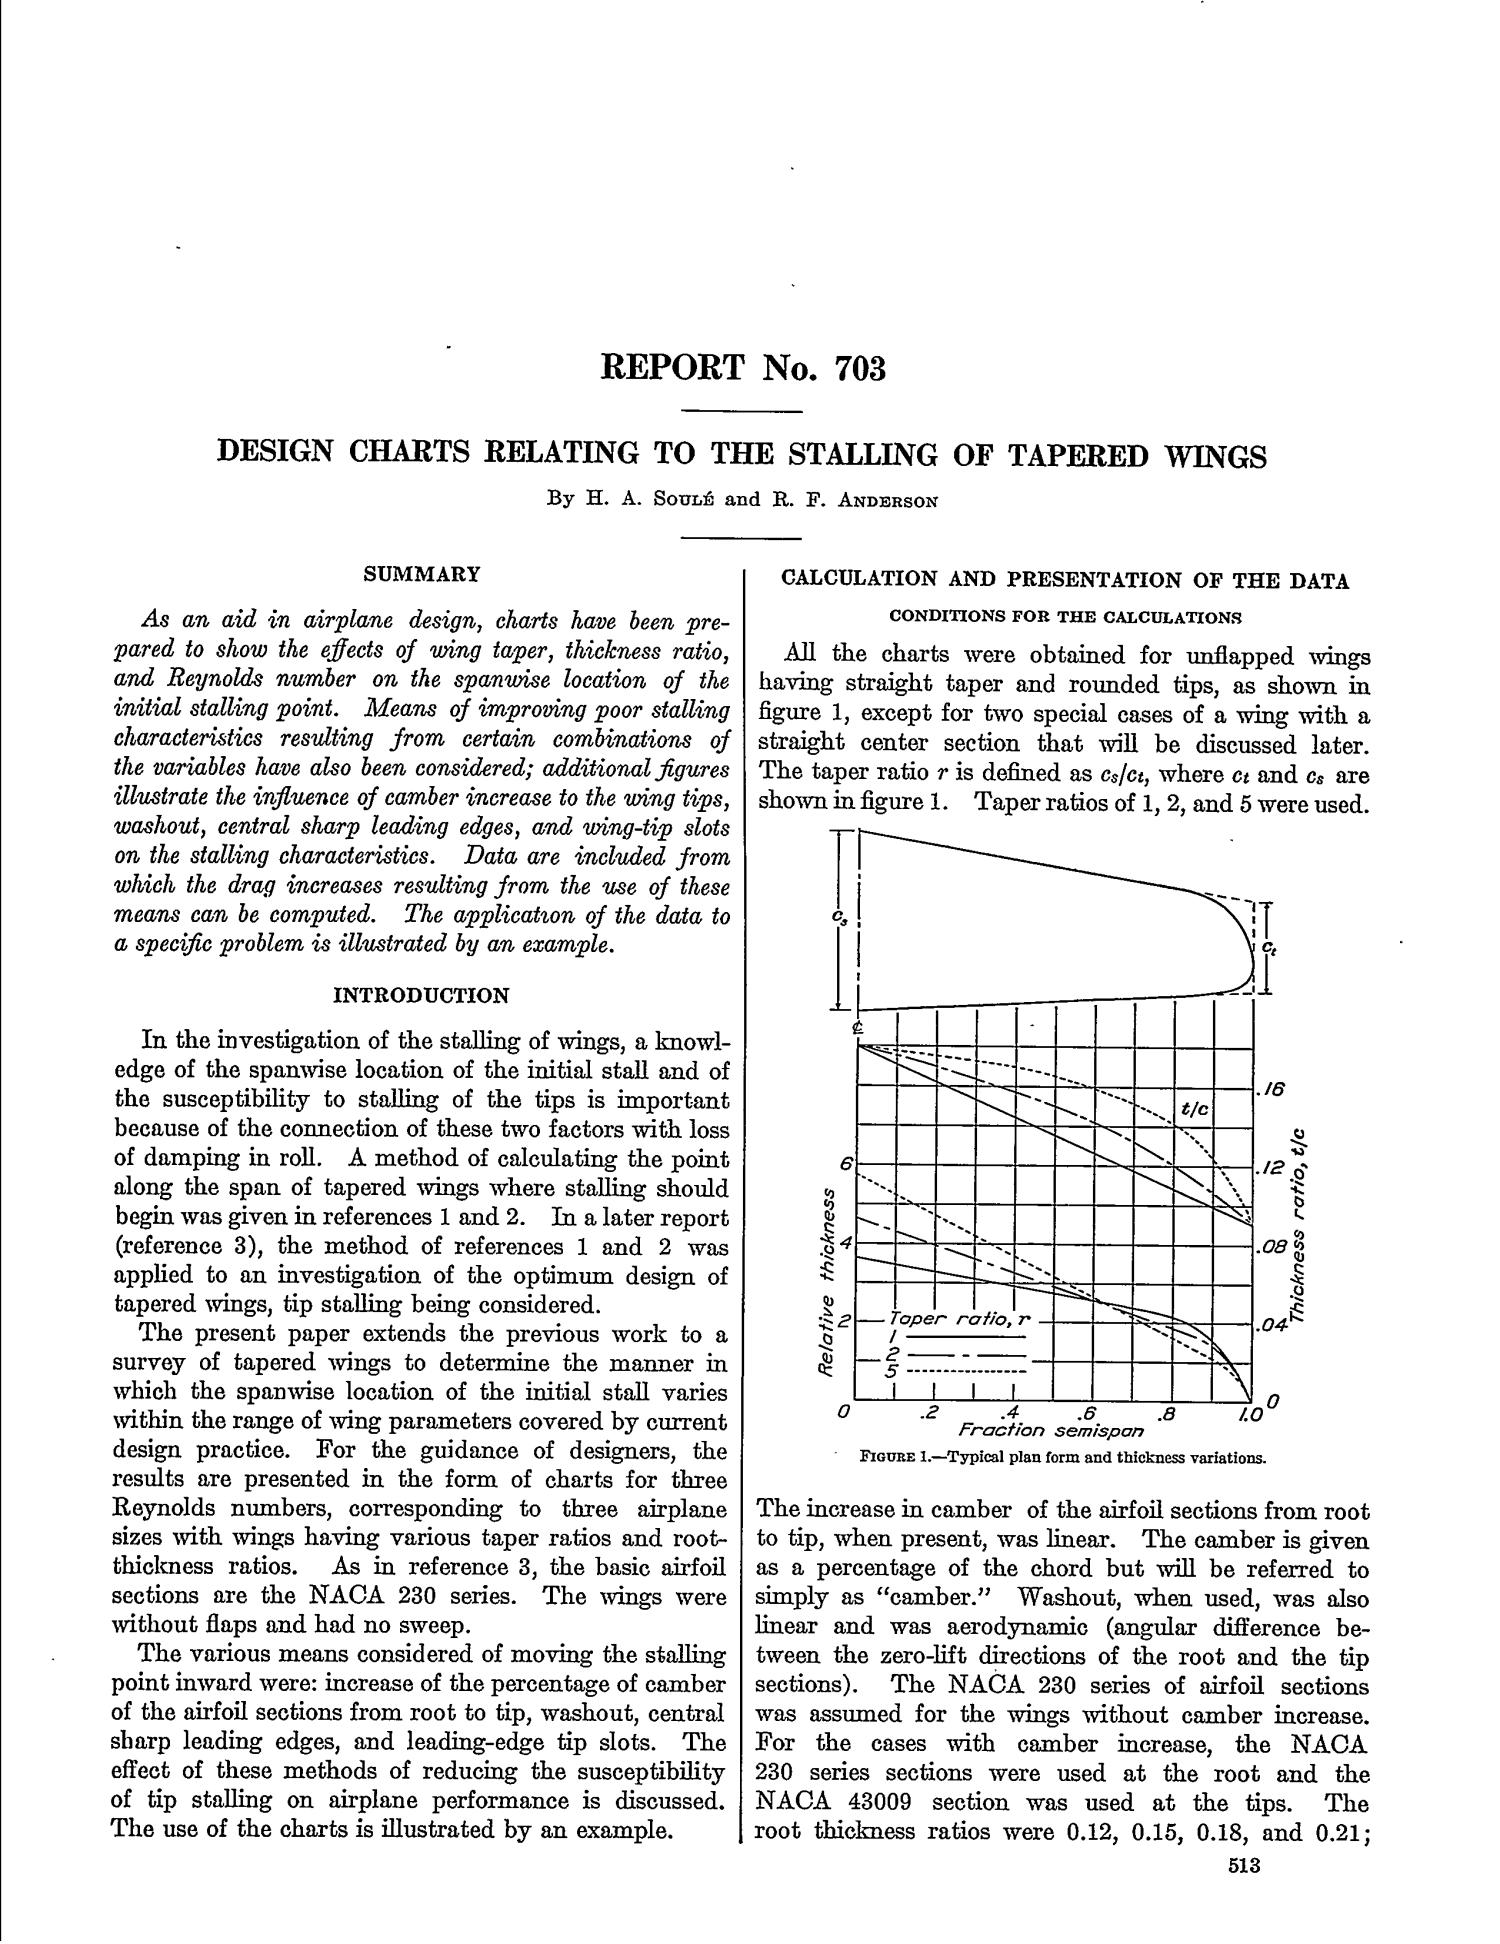 Design Charts Relating to the Stalling of Tapered Wings - Page 1 of